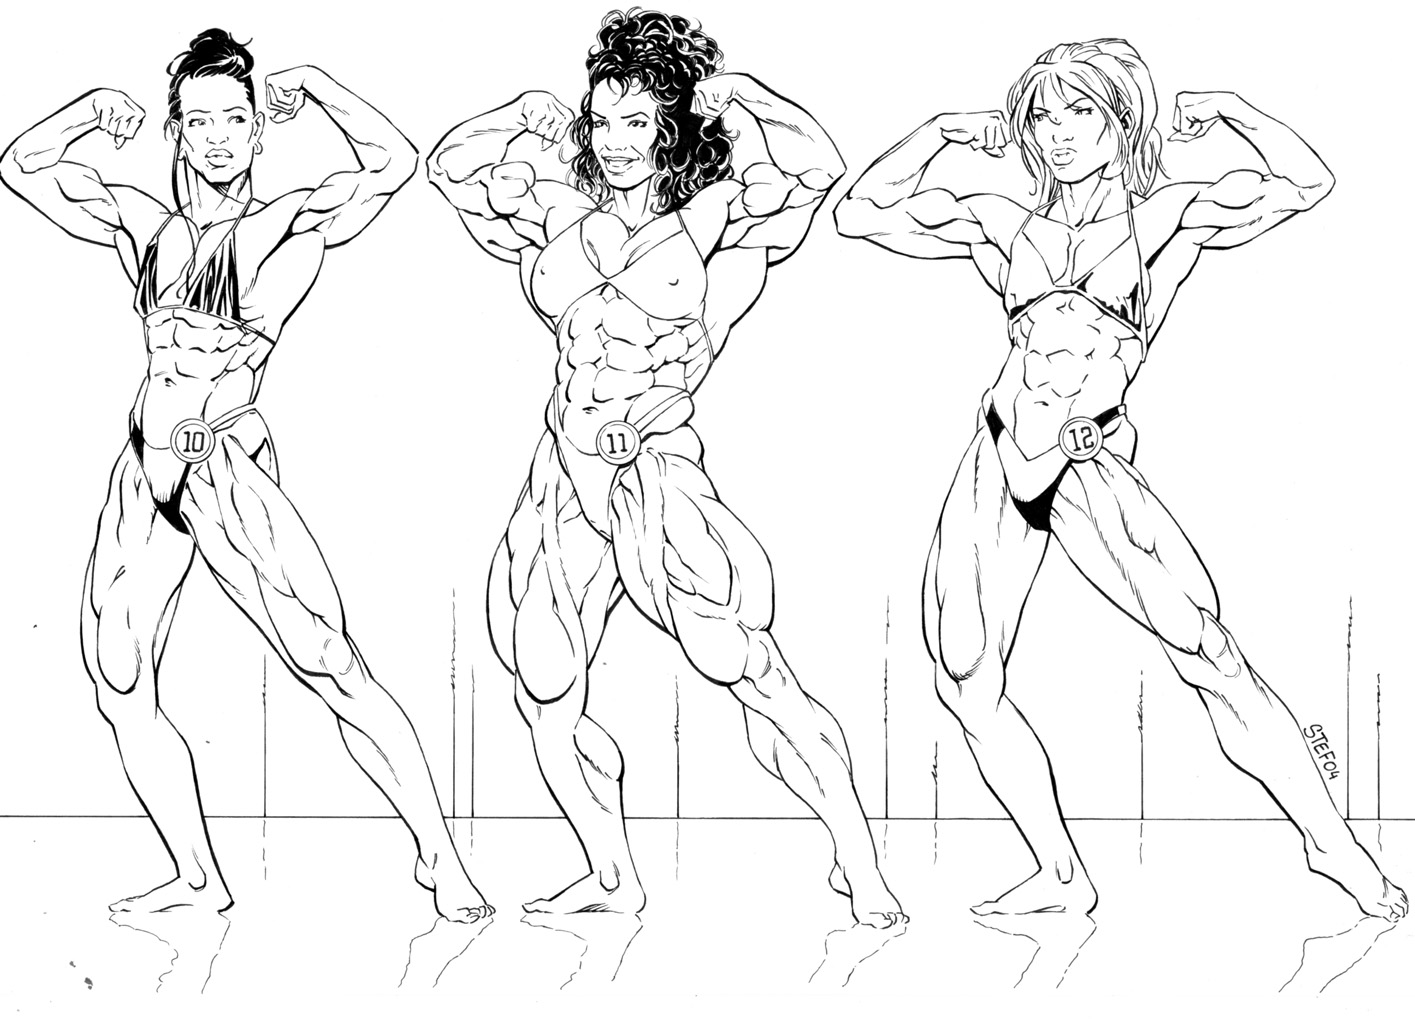 Drawings of women bodybuilders you